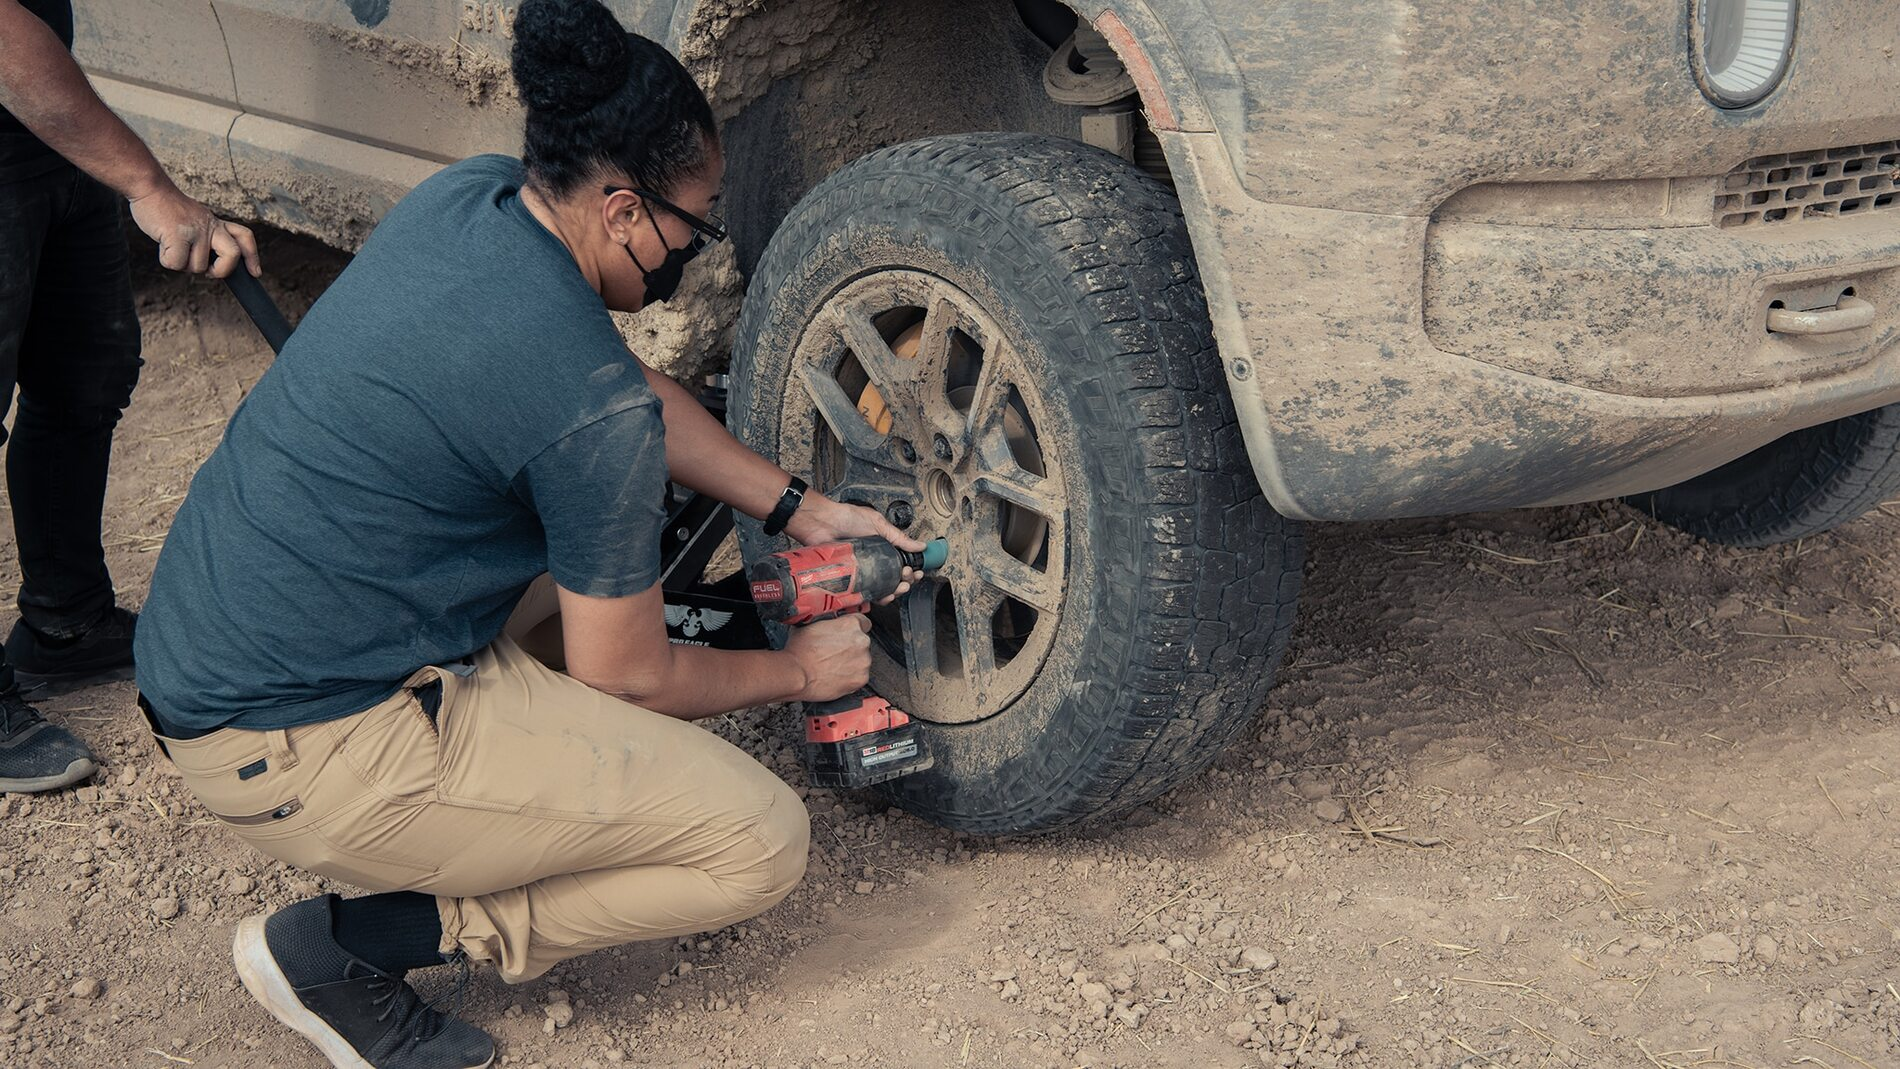 2022-Rivian-R1T-Spare-Tire-Explained-14.jpg